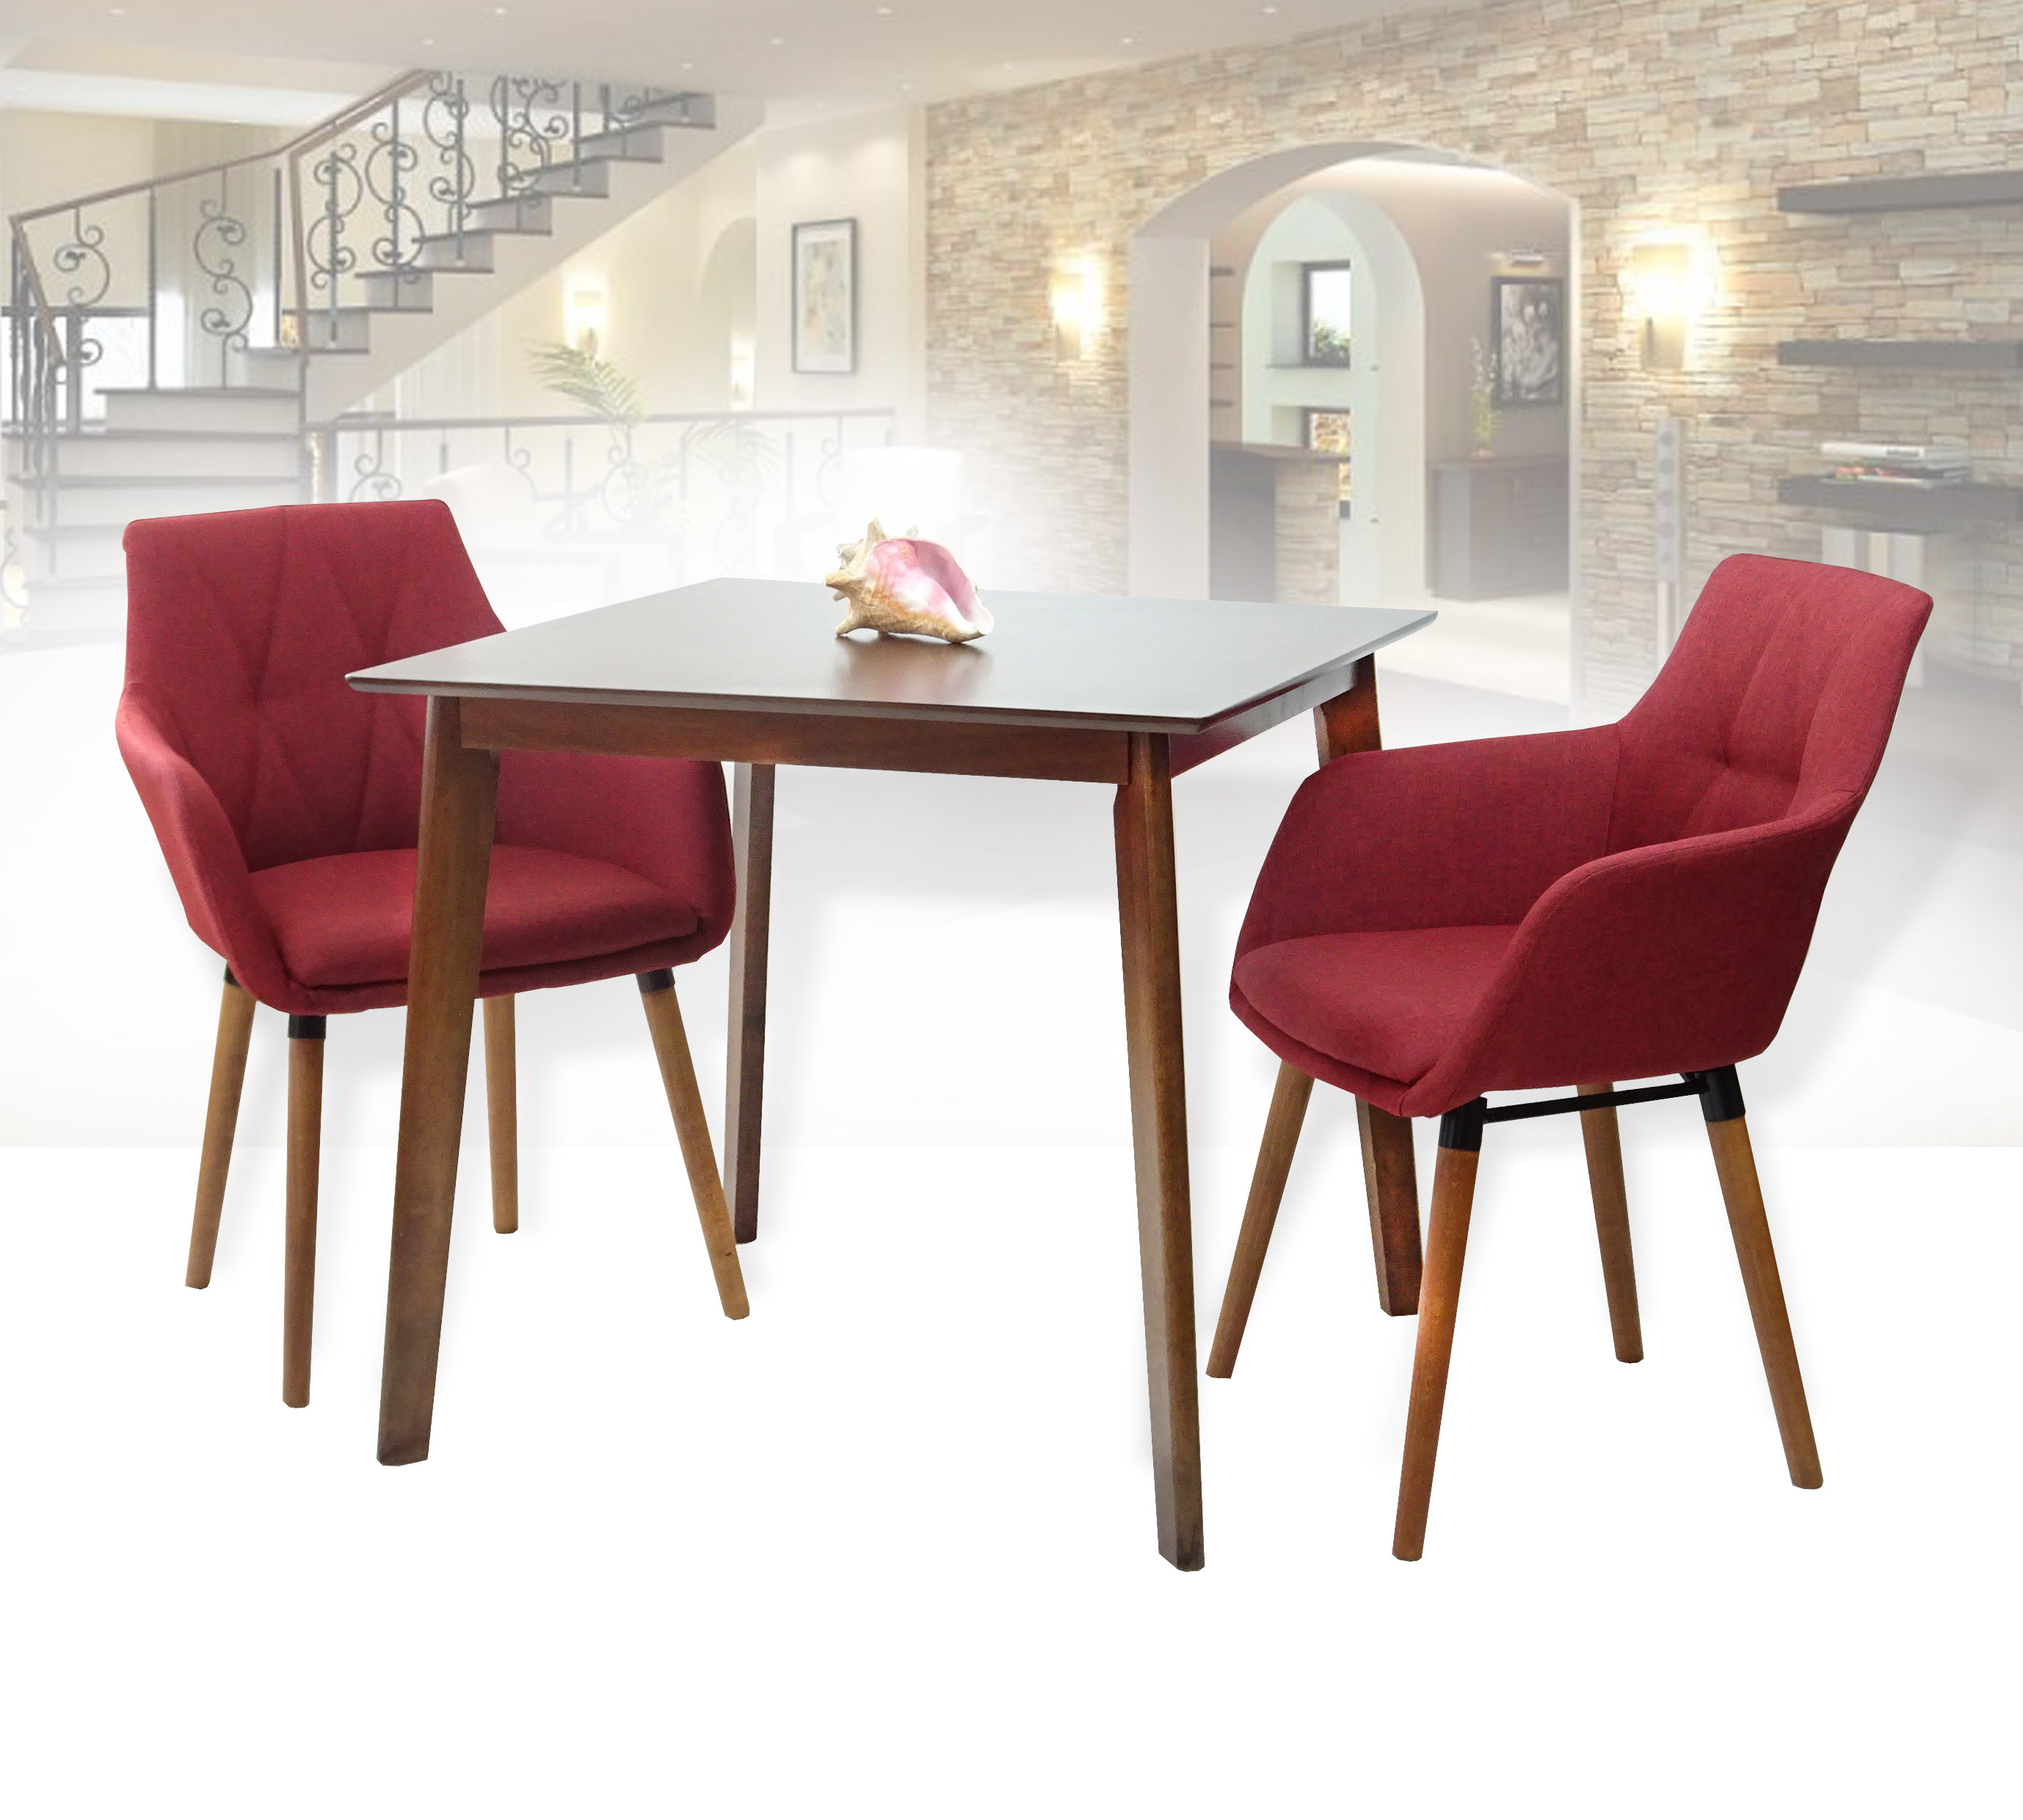 Outstanding Dining Kitchen Set Of 3 Square Wooden Medium Brown Table With 2 Alba Armchairs Red Color Unemploymentrelief Wooden Chair Designs For Living Room Unemploymentrelieforg